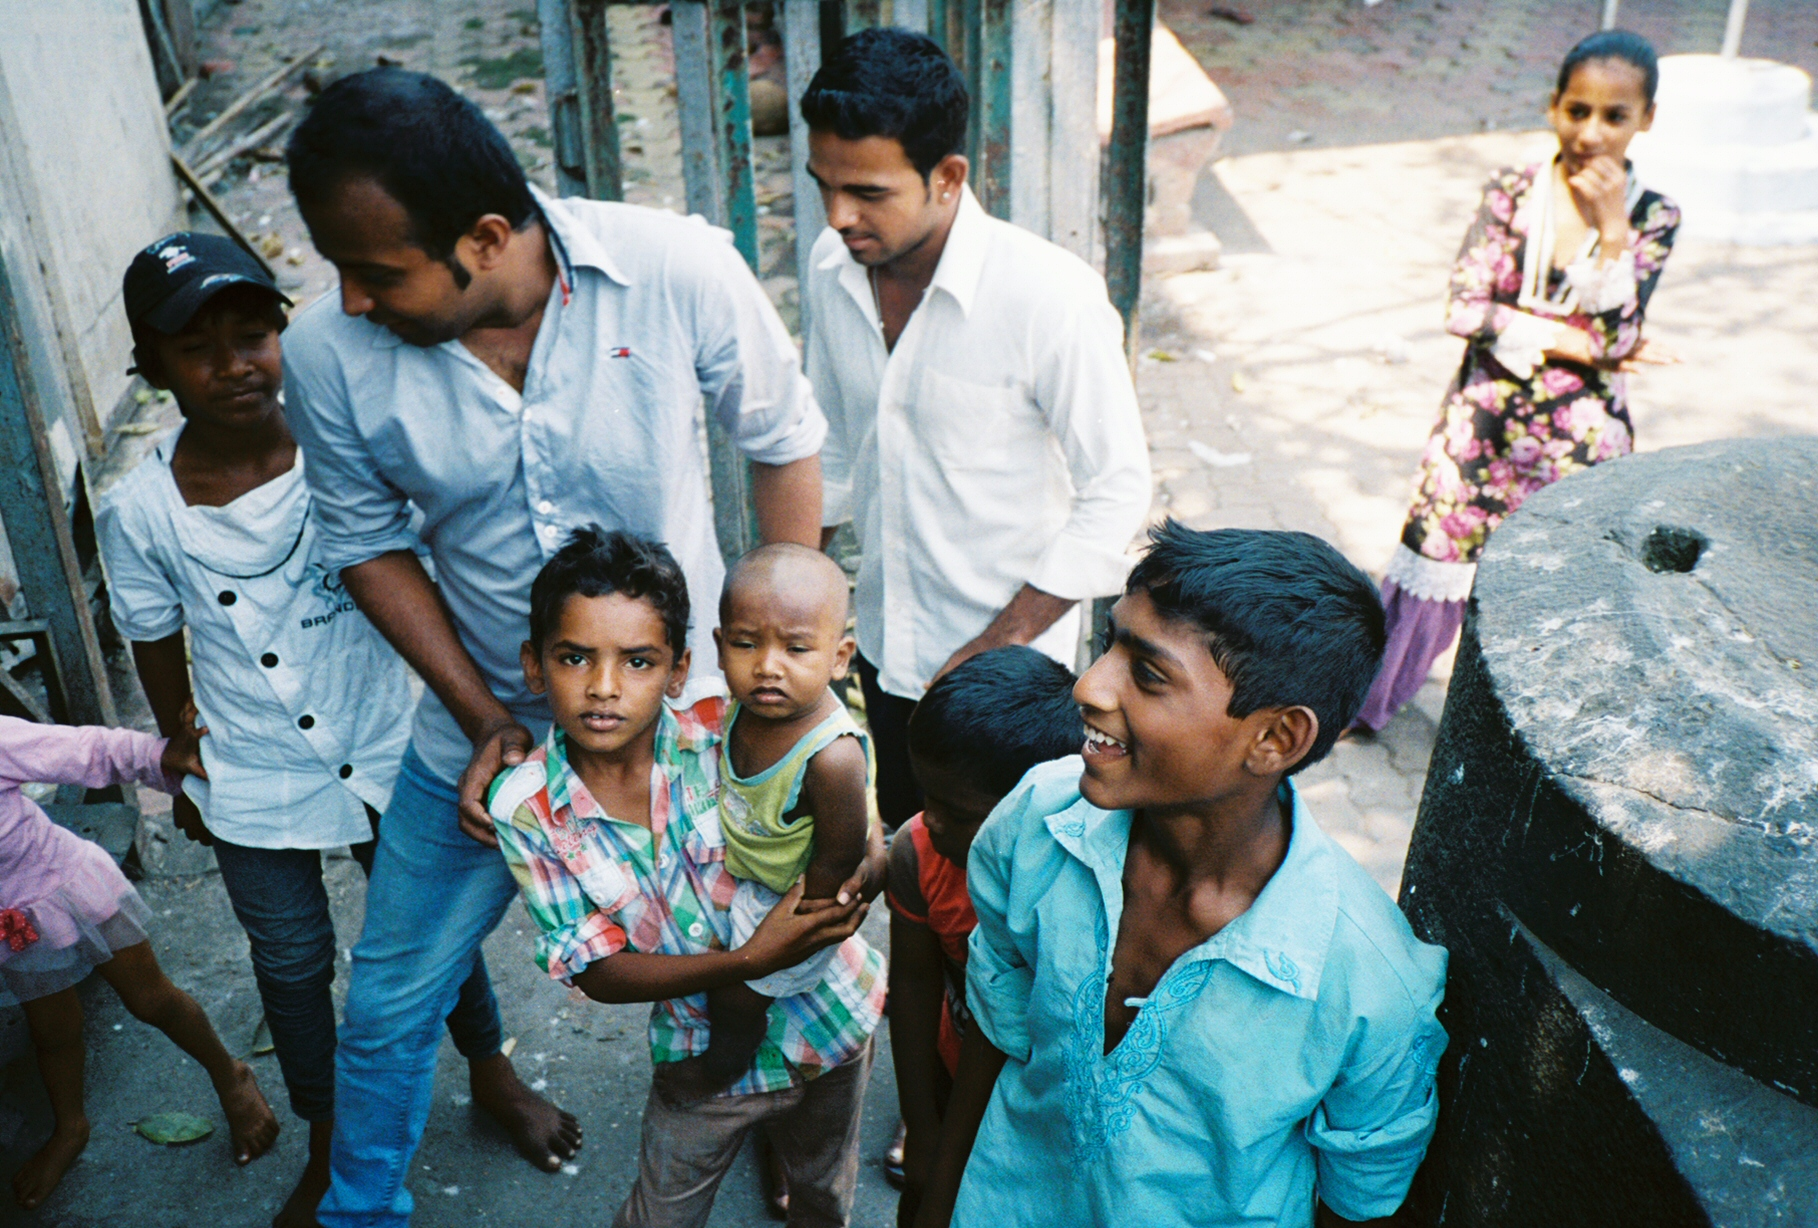 mumbai_azim_and_baby_slums_march_2013